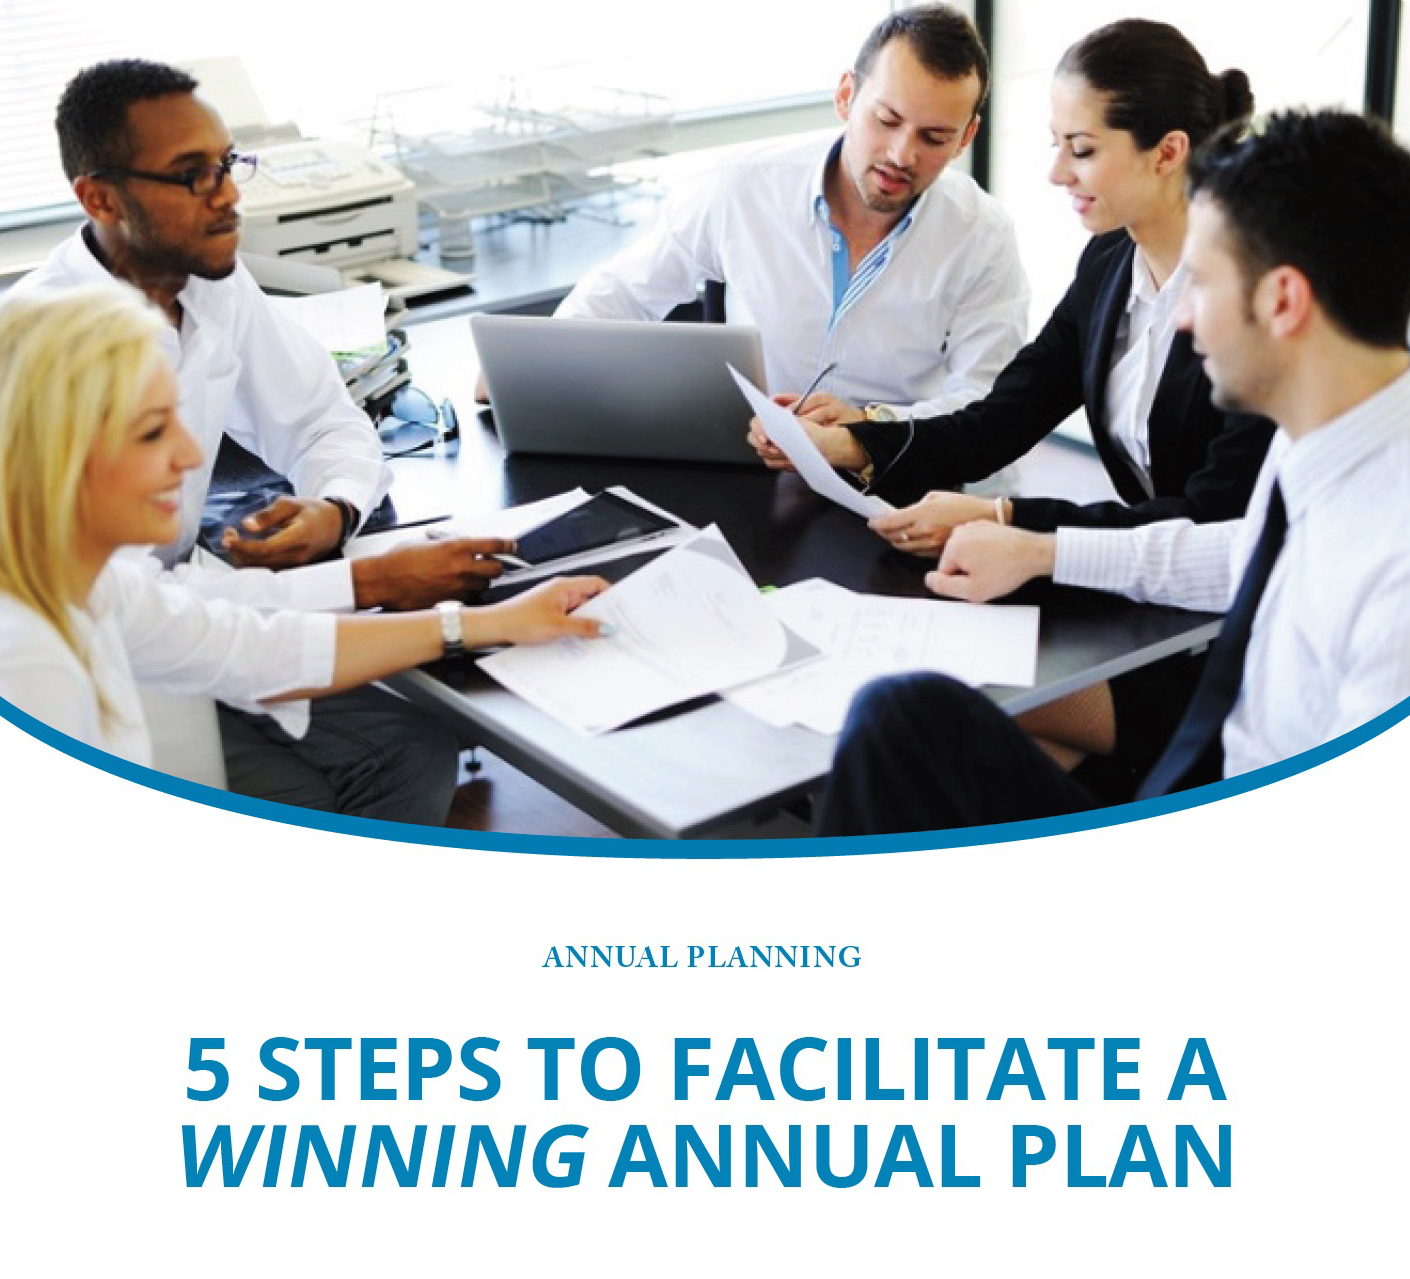 5 Steps to Facilitate a Winning Annual Plan